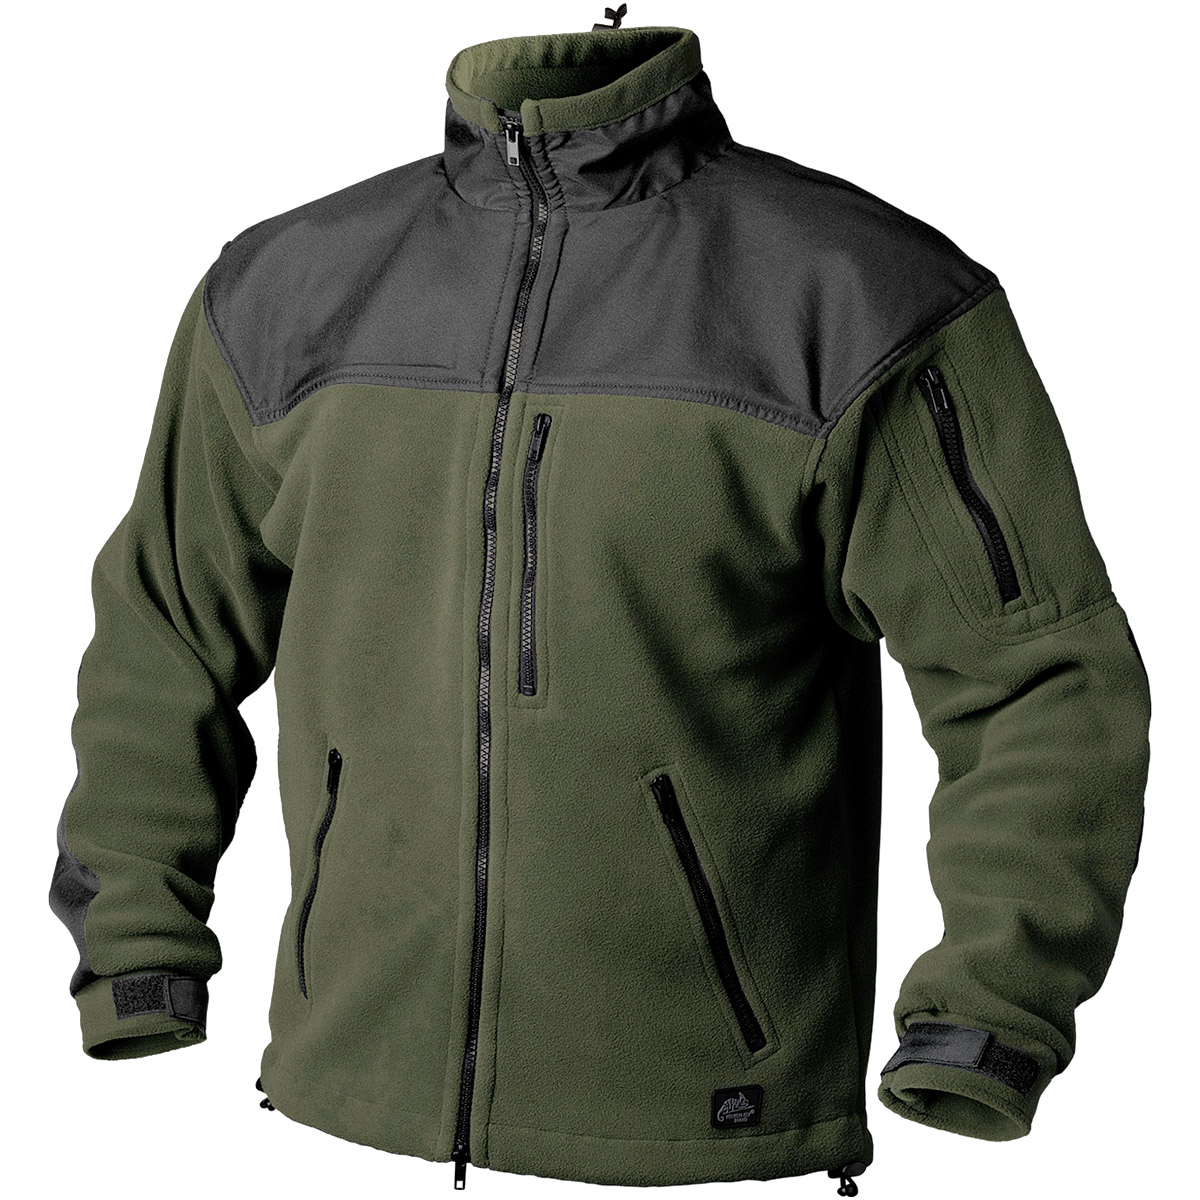 HELIKON TACTICAL ARMY WARM FLEECE JACKET CLASSIC OUTDOOR POLAR ...